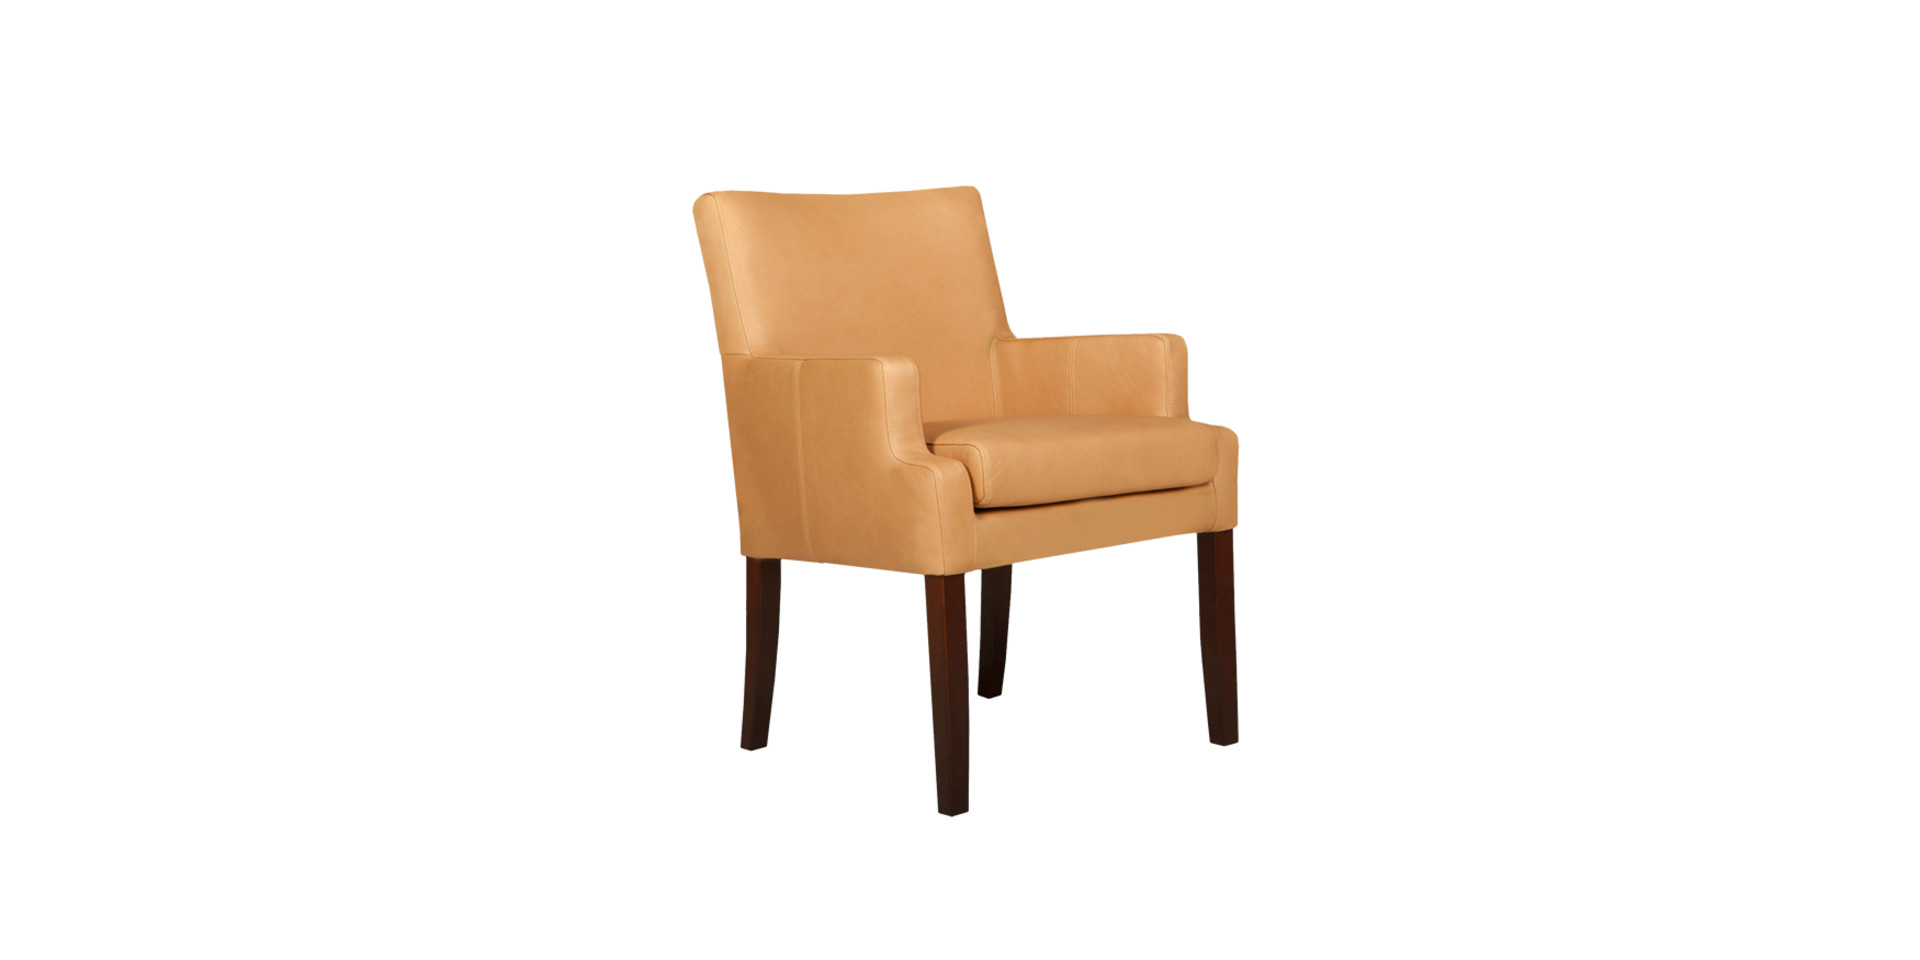 sits-merlin-fauteuil-chair_aniline_latte_2